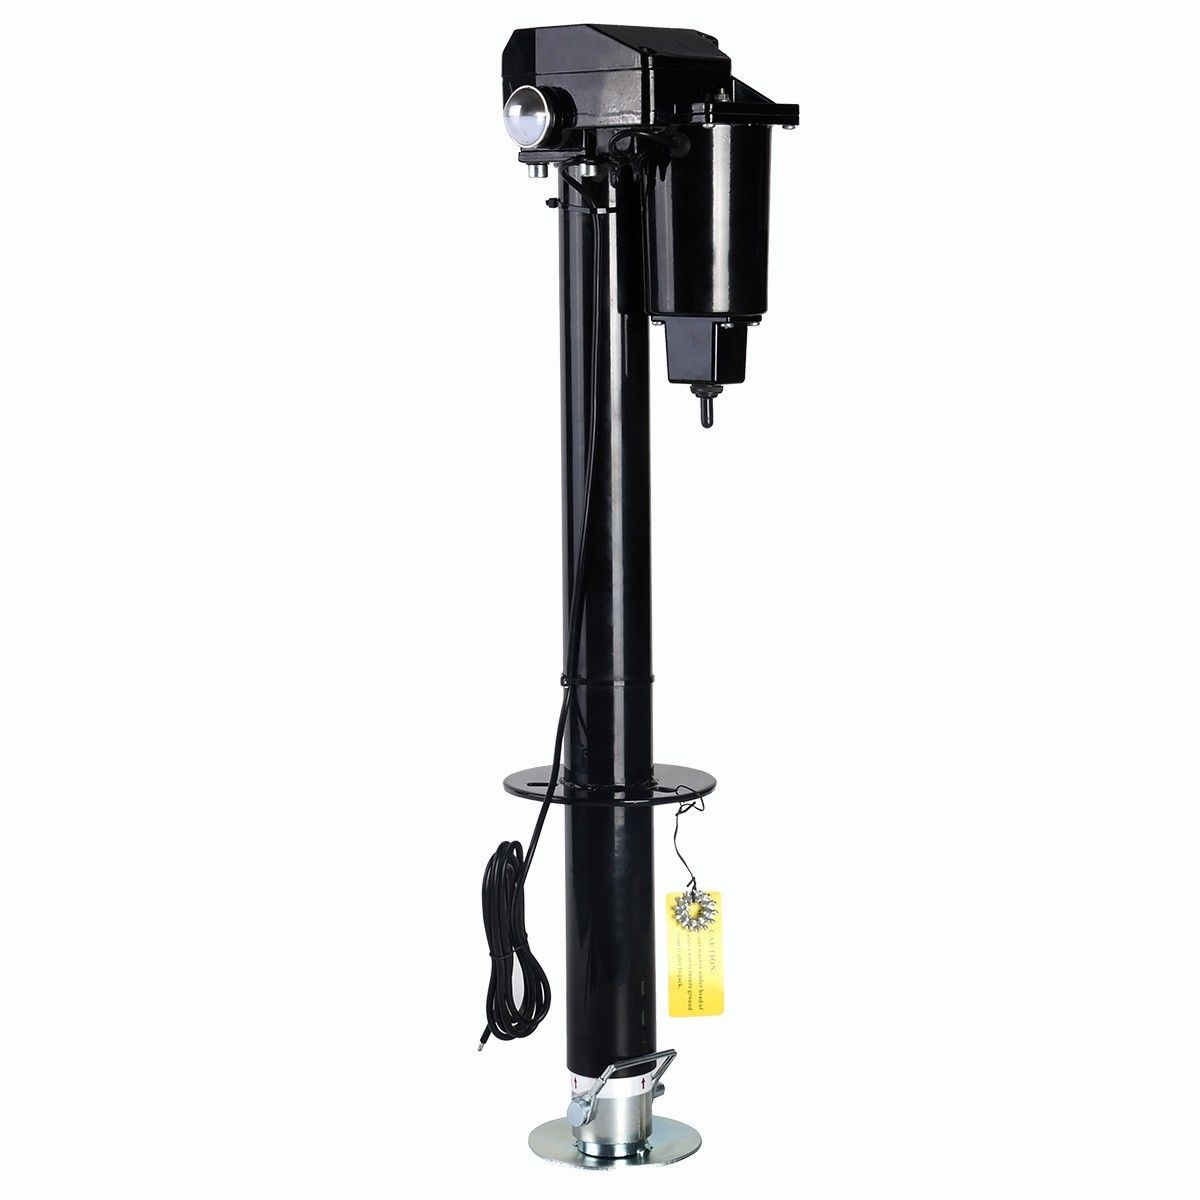 Gymax Electric Power Tongue Jack 3500 lbs RV Boat Jet Ski Trailer Camper 12V by Gymax